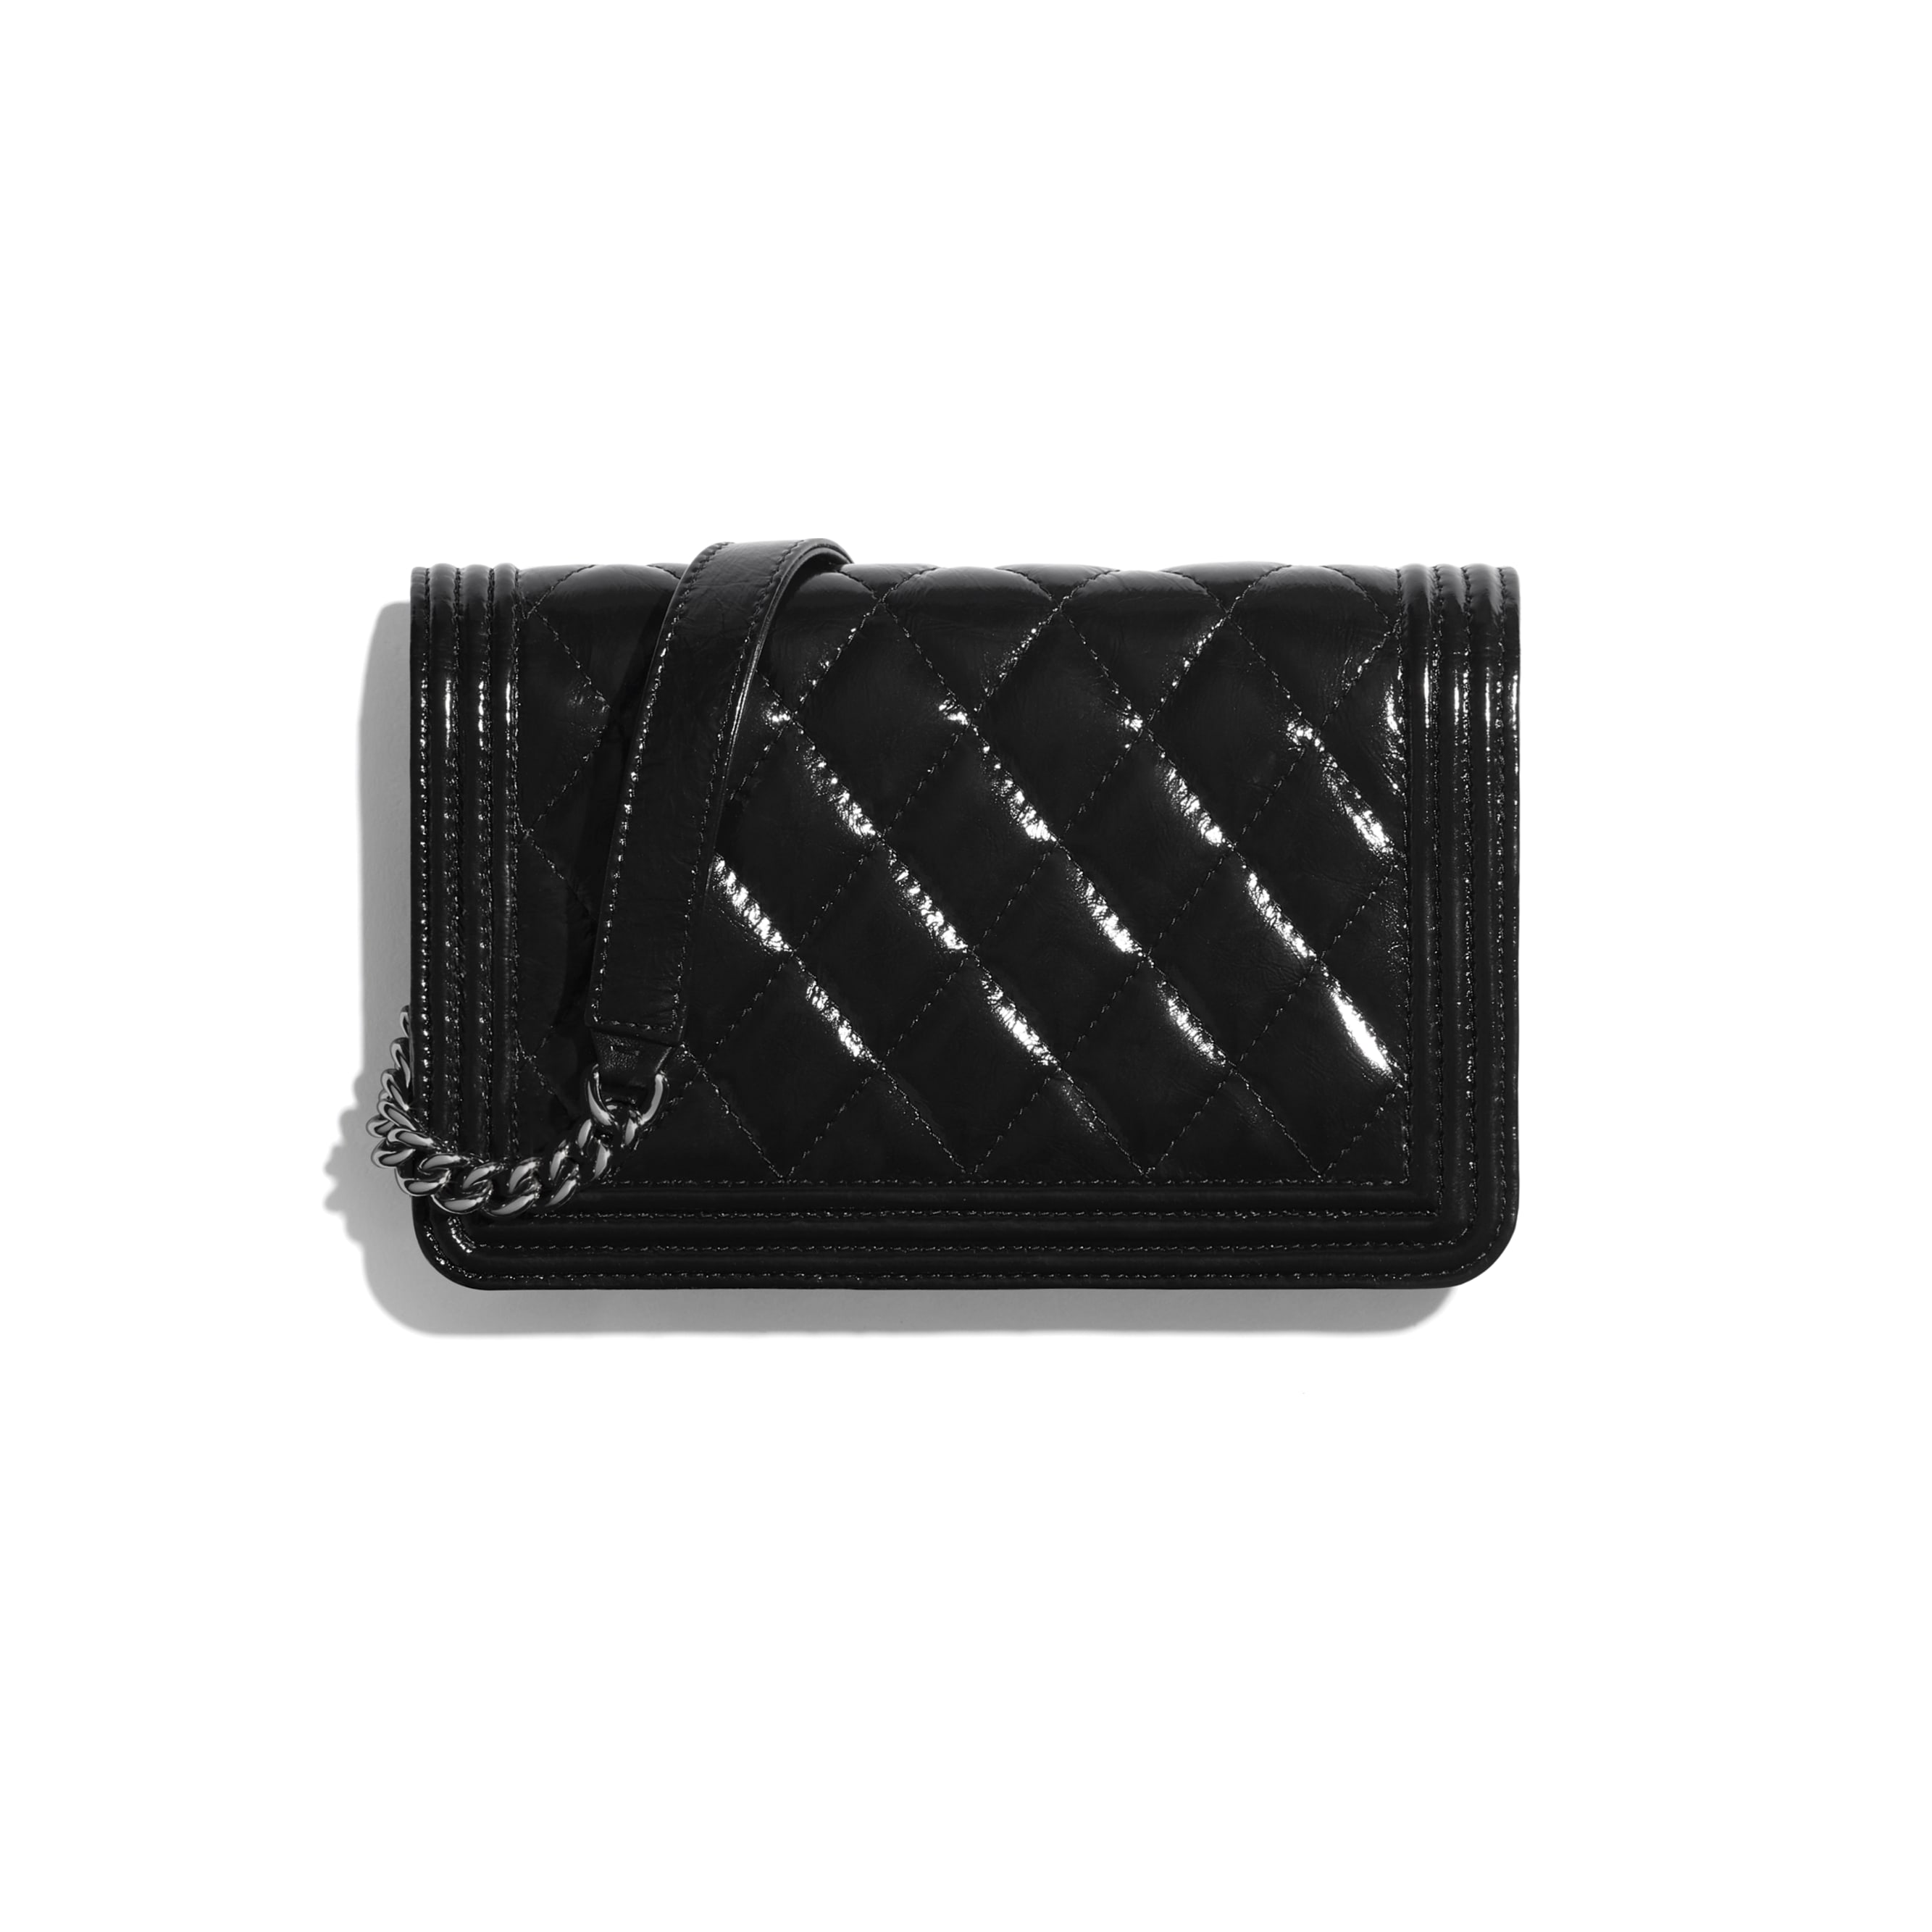 BOY CHANEL Wallet On Chain - Black - Aged Calfskin & Ruthenium-Finish Metal - CHANEL - Alternative view - see standard sized version